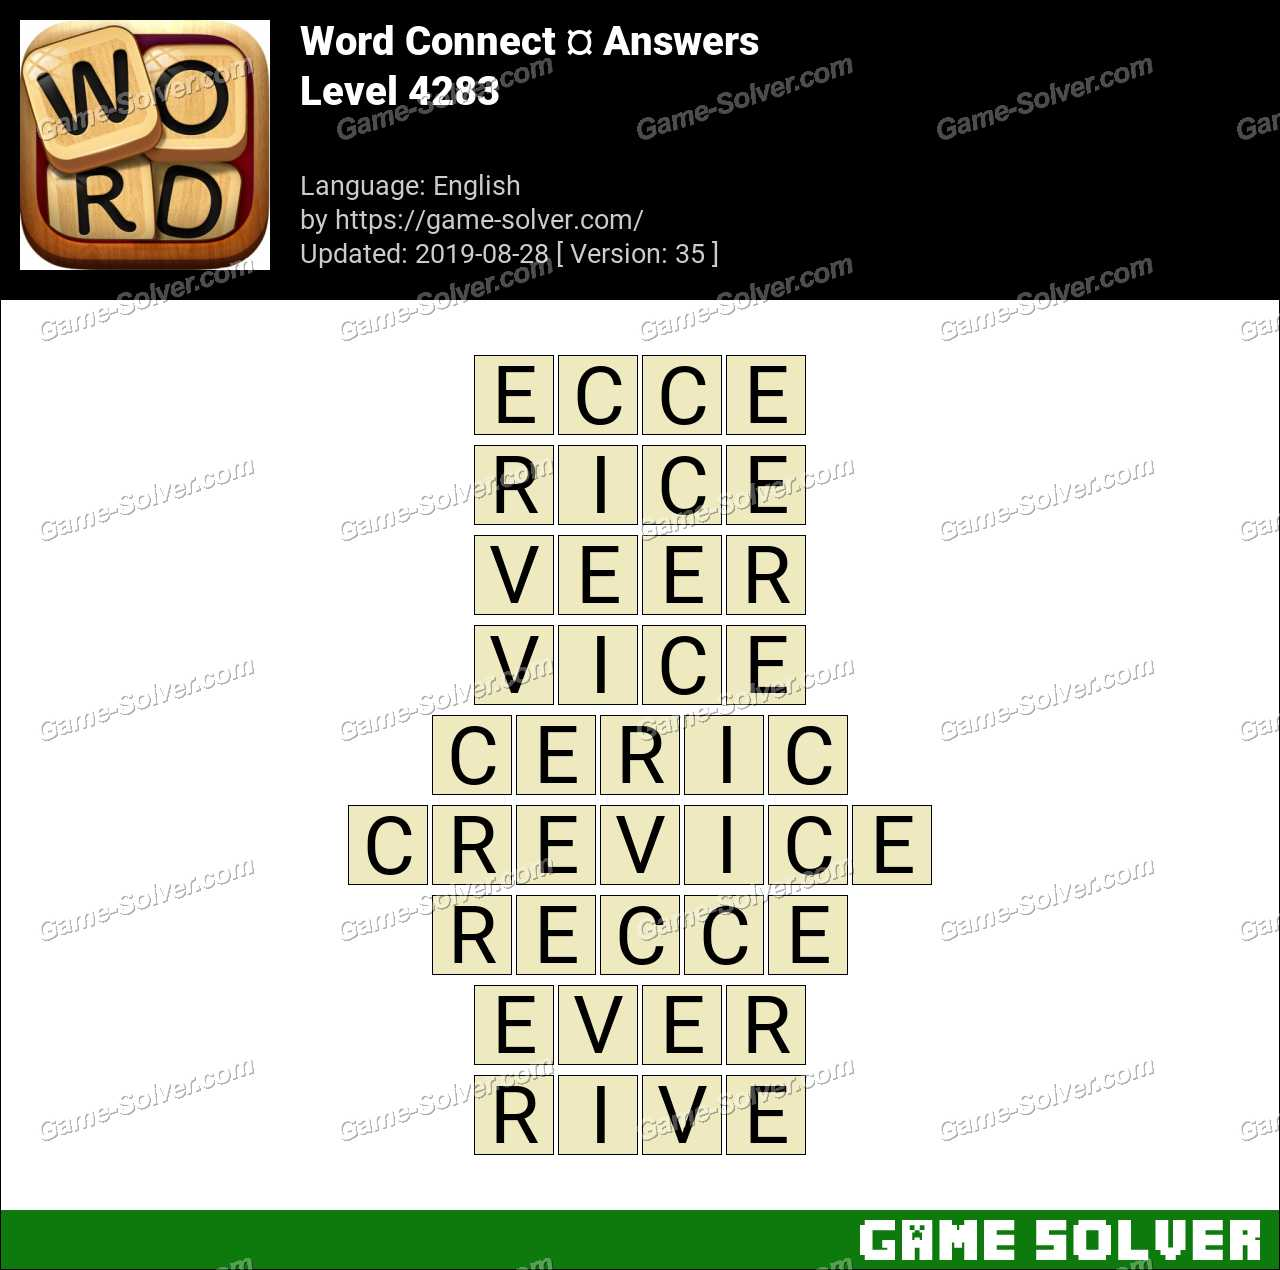 Word Connect Level 4283 Answers